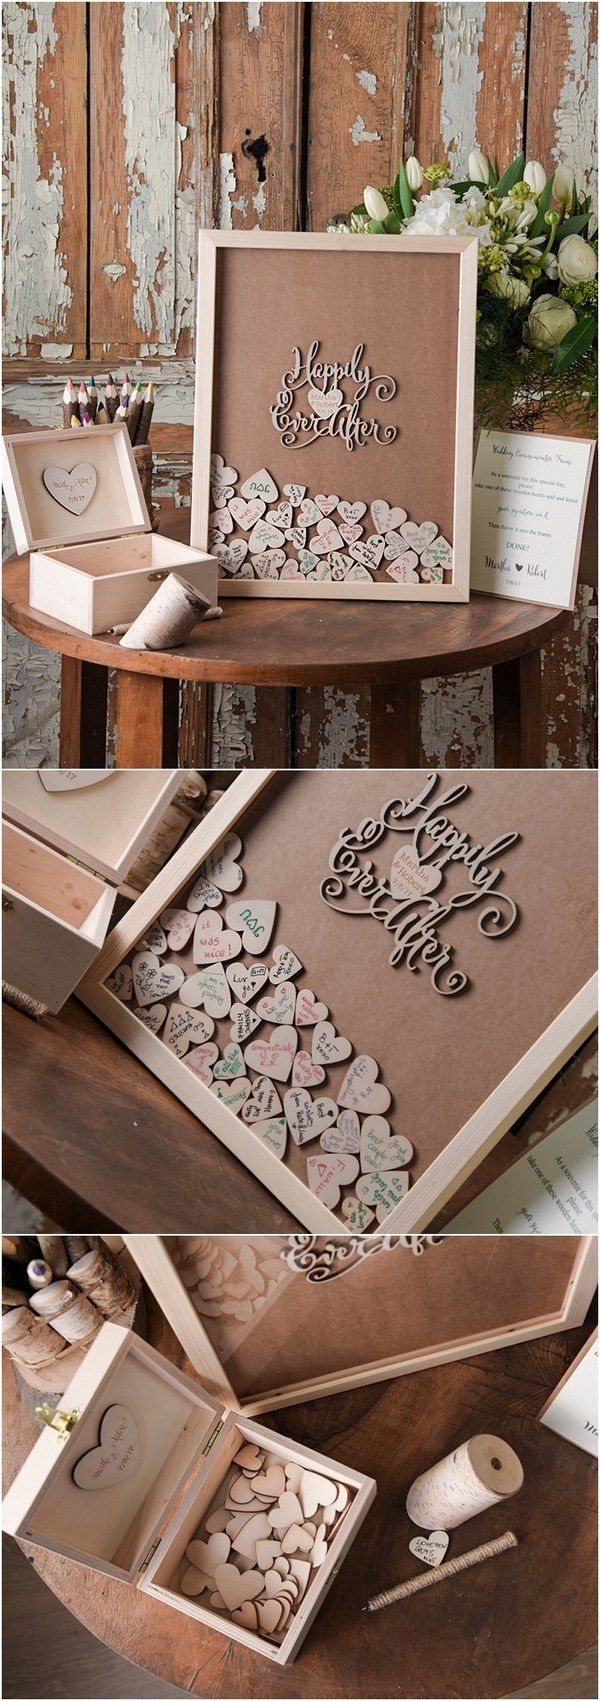 Rustic Laser Cut Wood Wedding Guest Book-Happy Ever After | Deer Pearl Flowers / http://www.deerpearlflowers.com/rustic-wedding-guest-books-botanical-wedding-invitations/rustic-laser-cut-wood-wedding-guest-book-happy-ever-after/